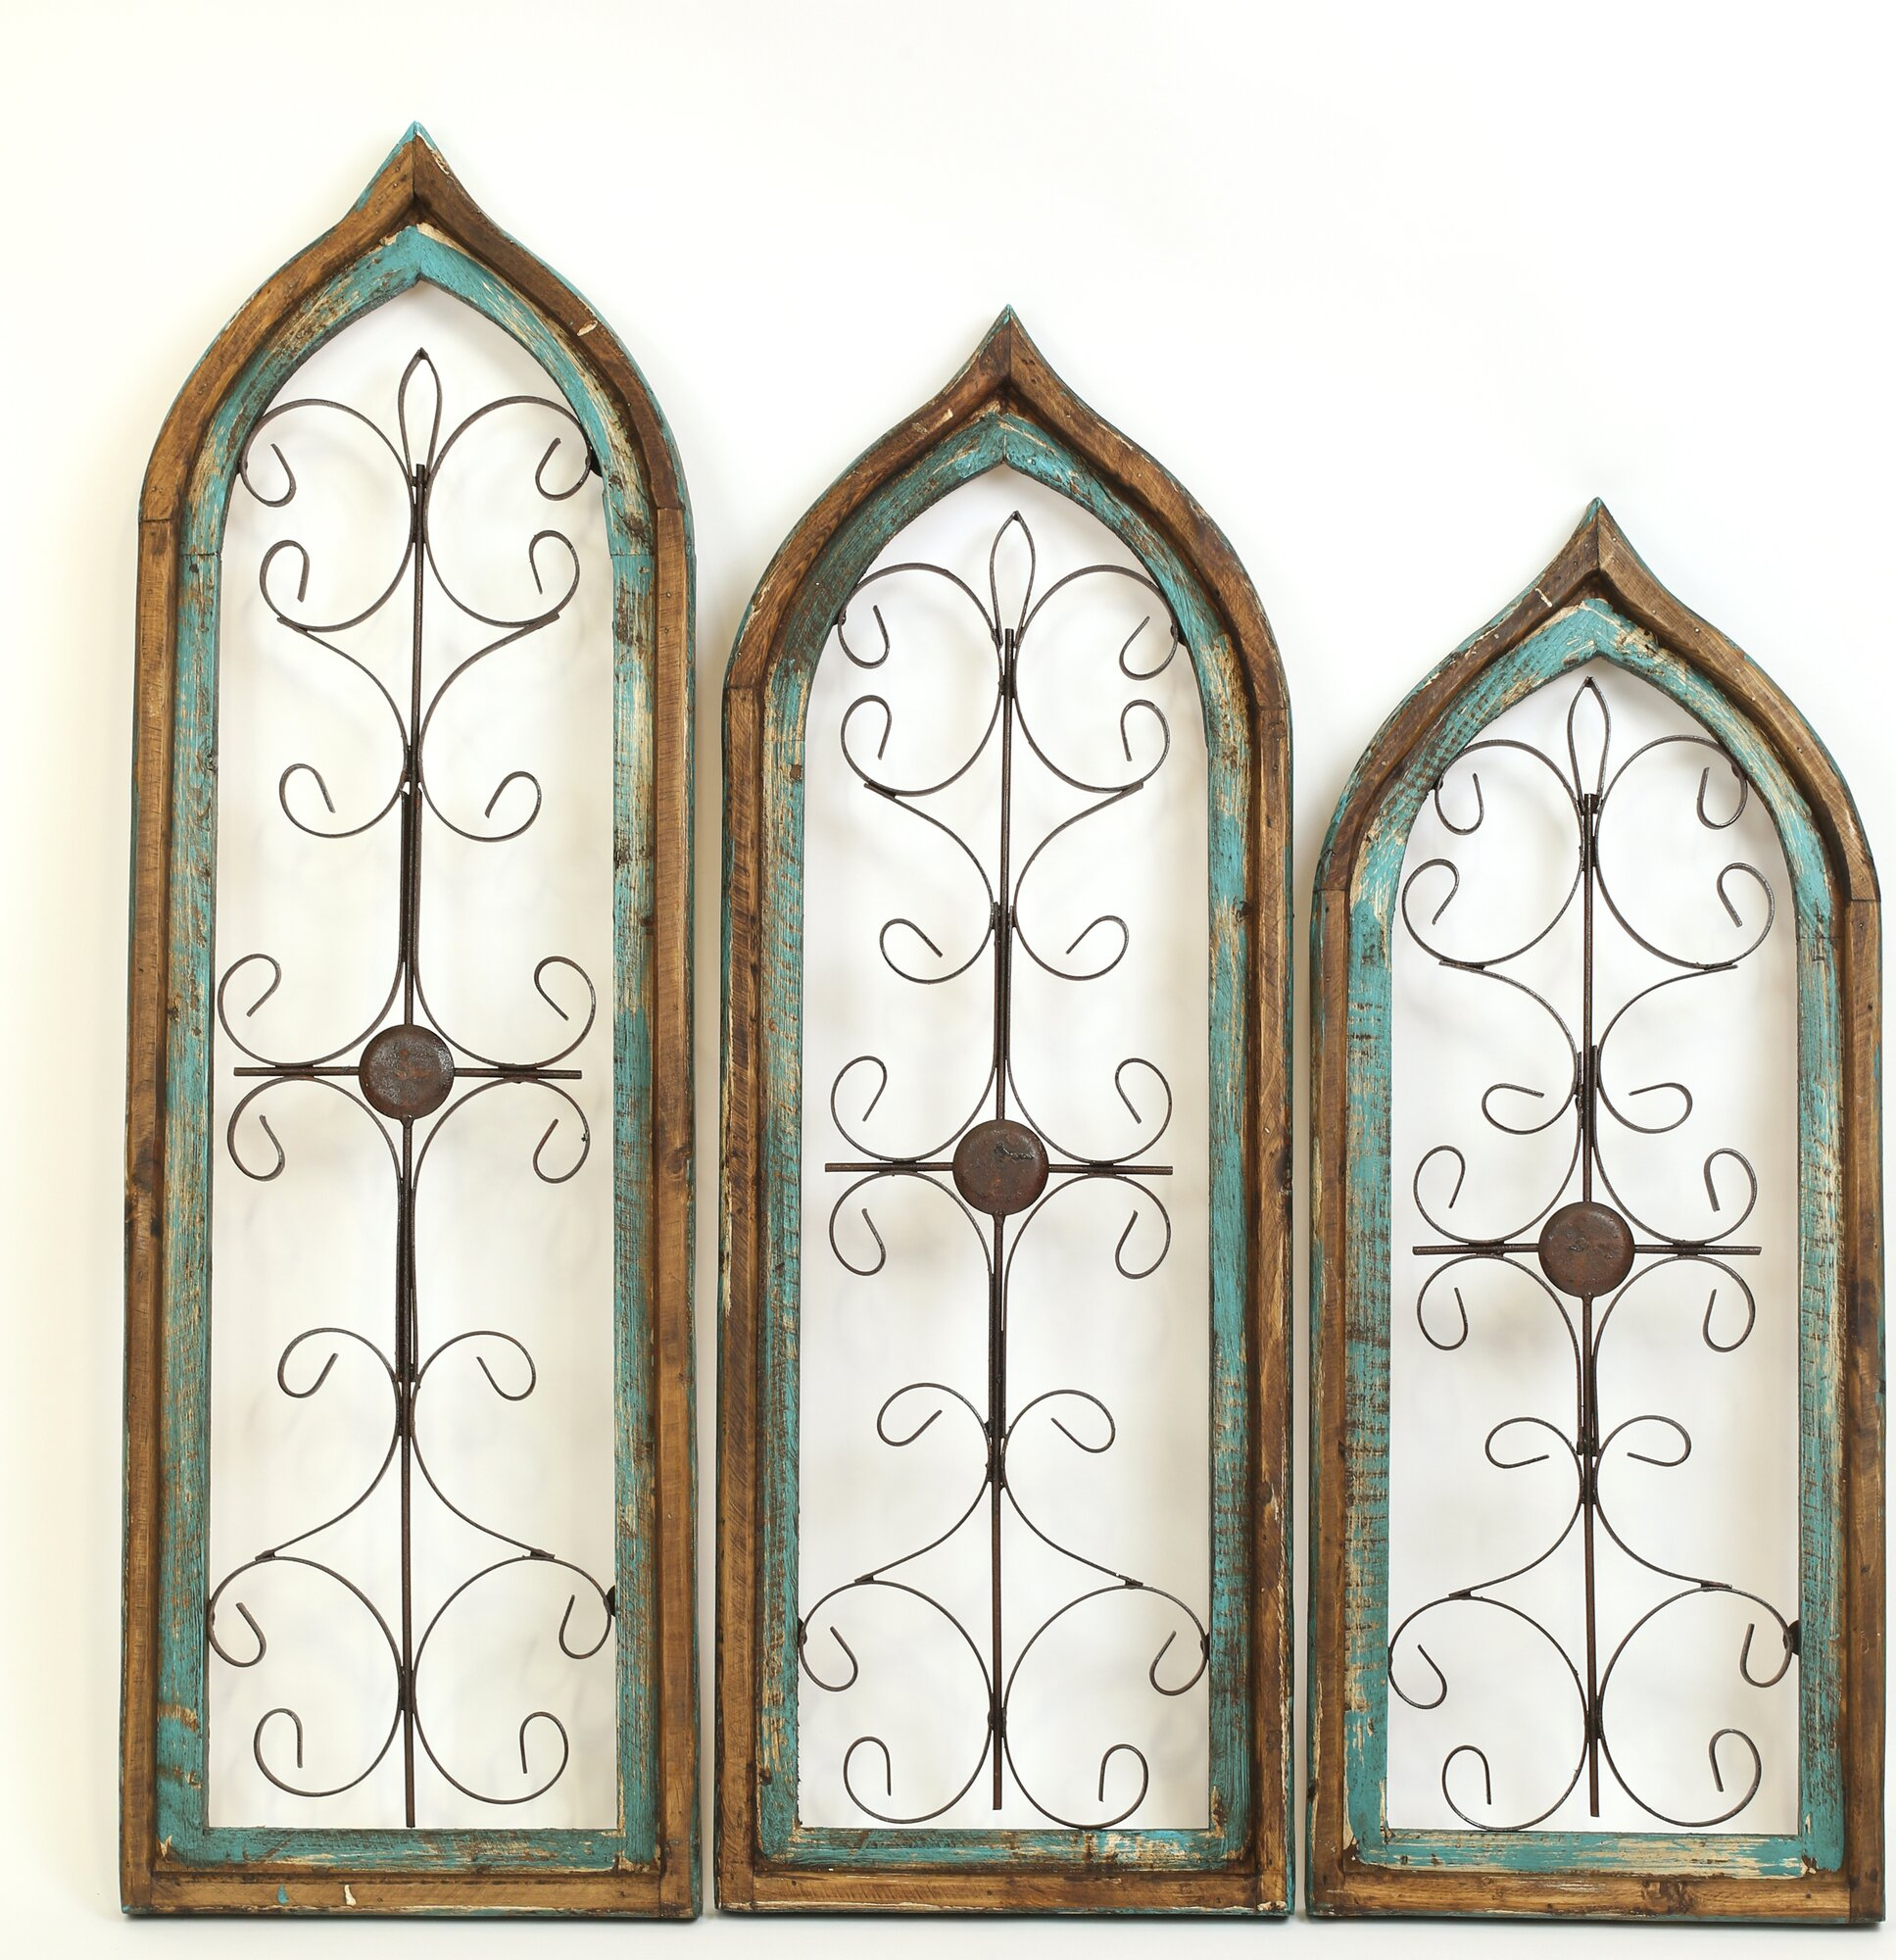 My amigos imports gothic 3 piece architectural window wall for Window arch wall decor